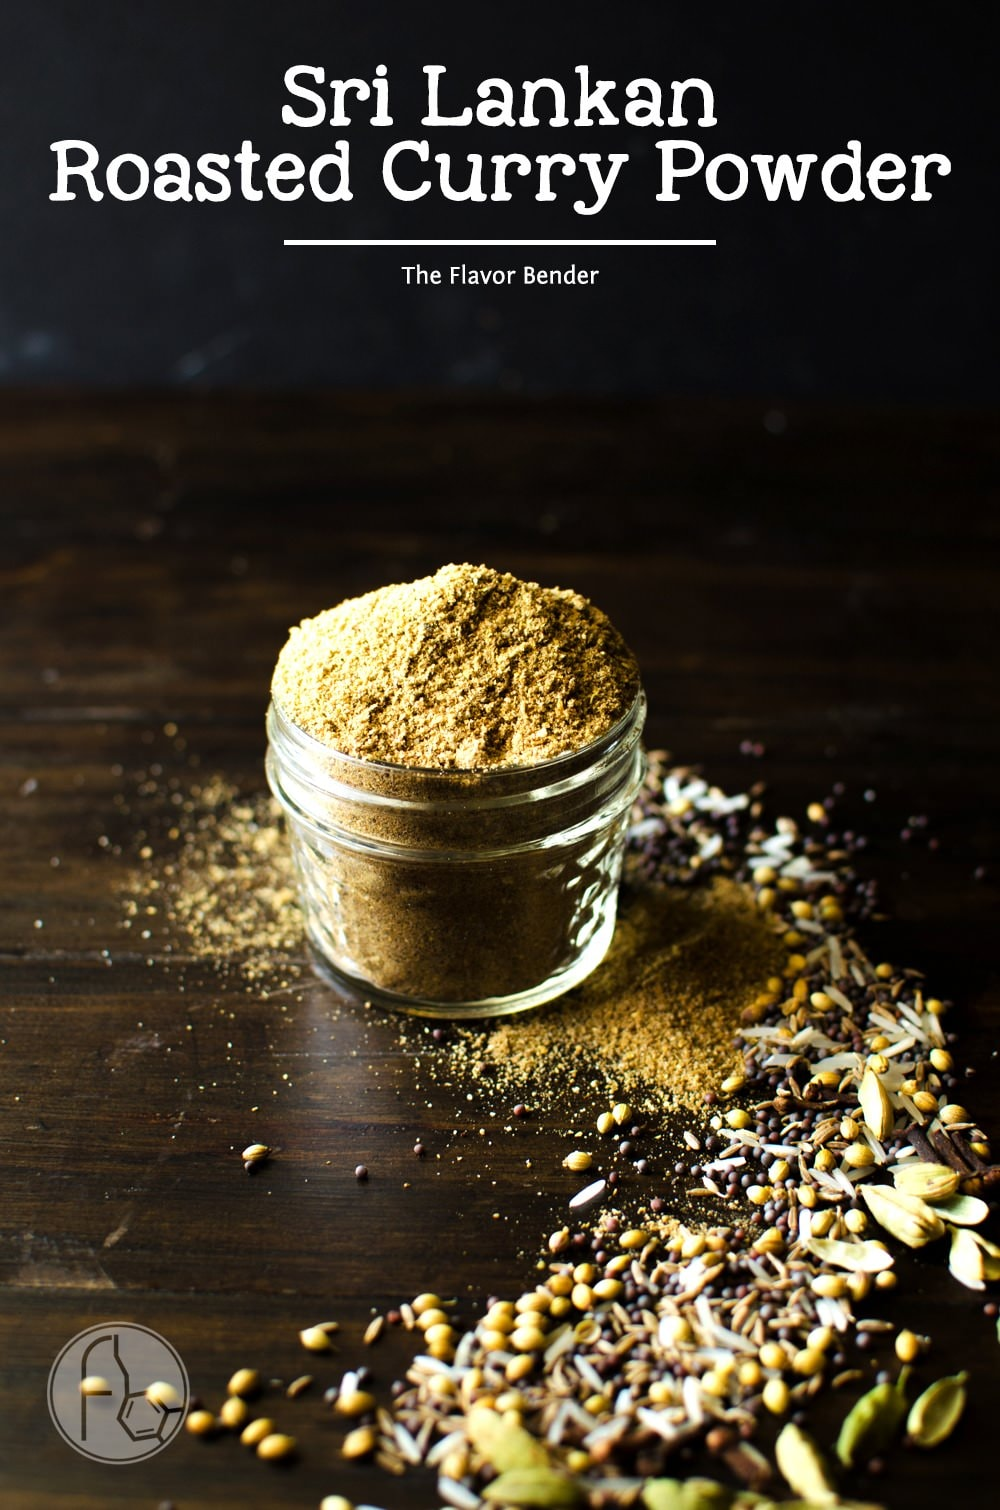 The Best Sri Lankan Roasted Curry Powder The Flavor Bender